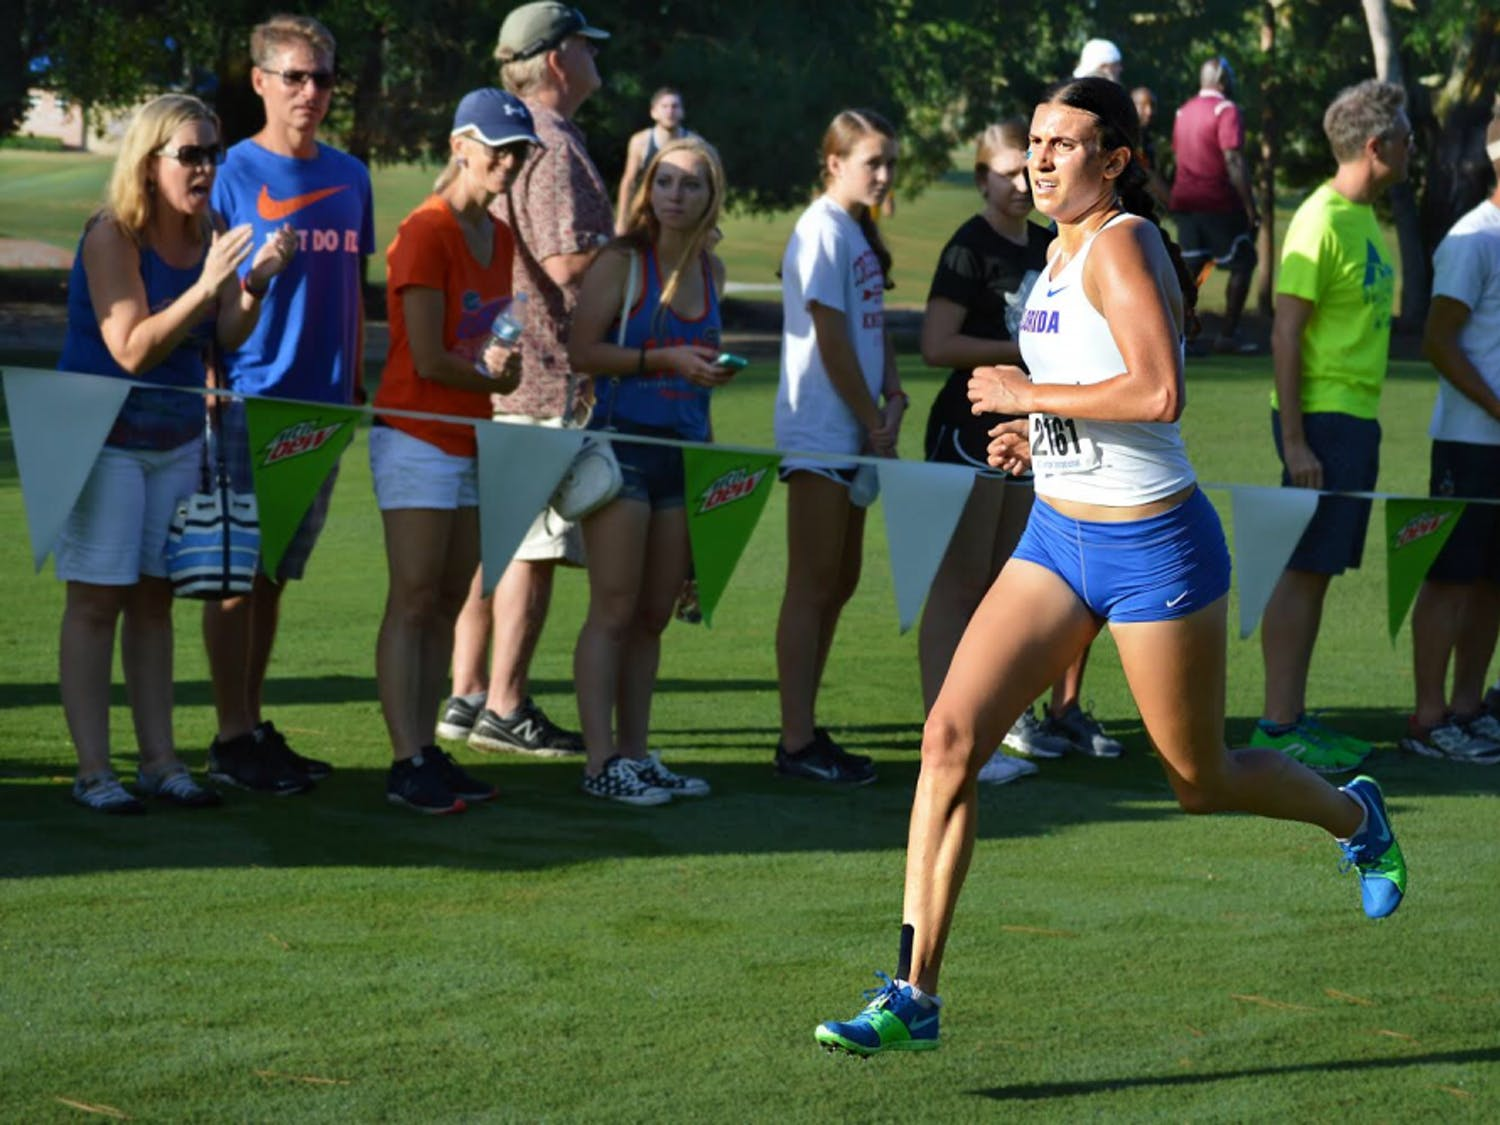 Senior Jessica Pascoe made program history as the first women's runner to notch four title wins in the first four meets of a season.